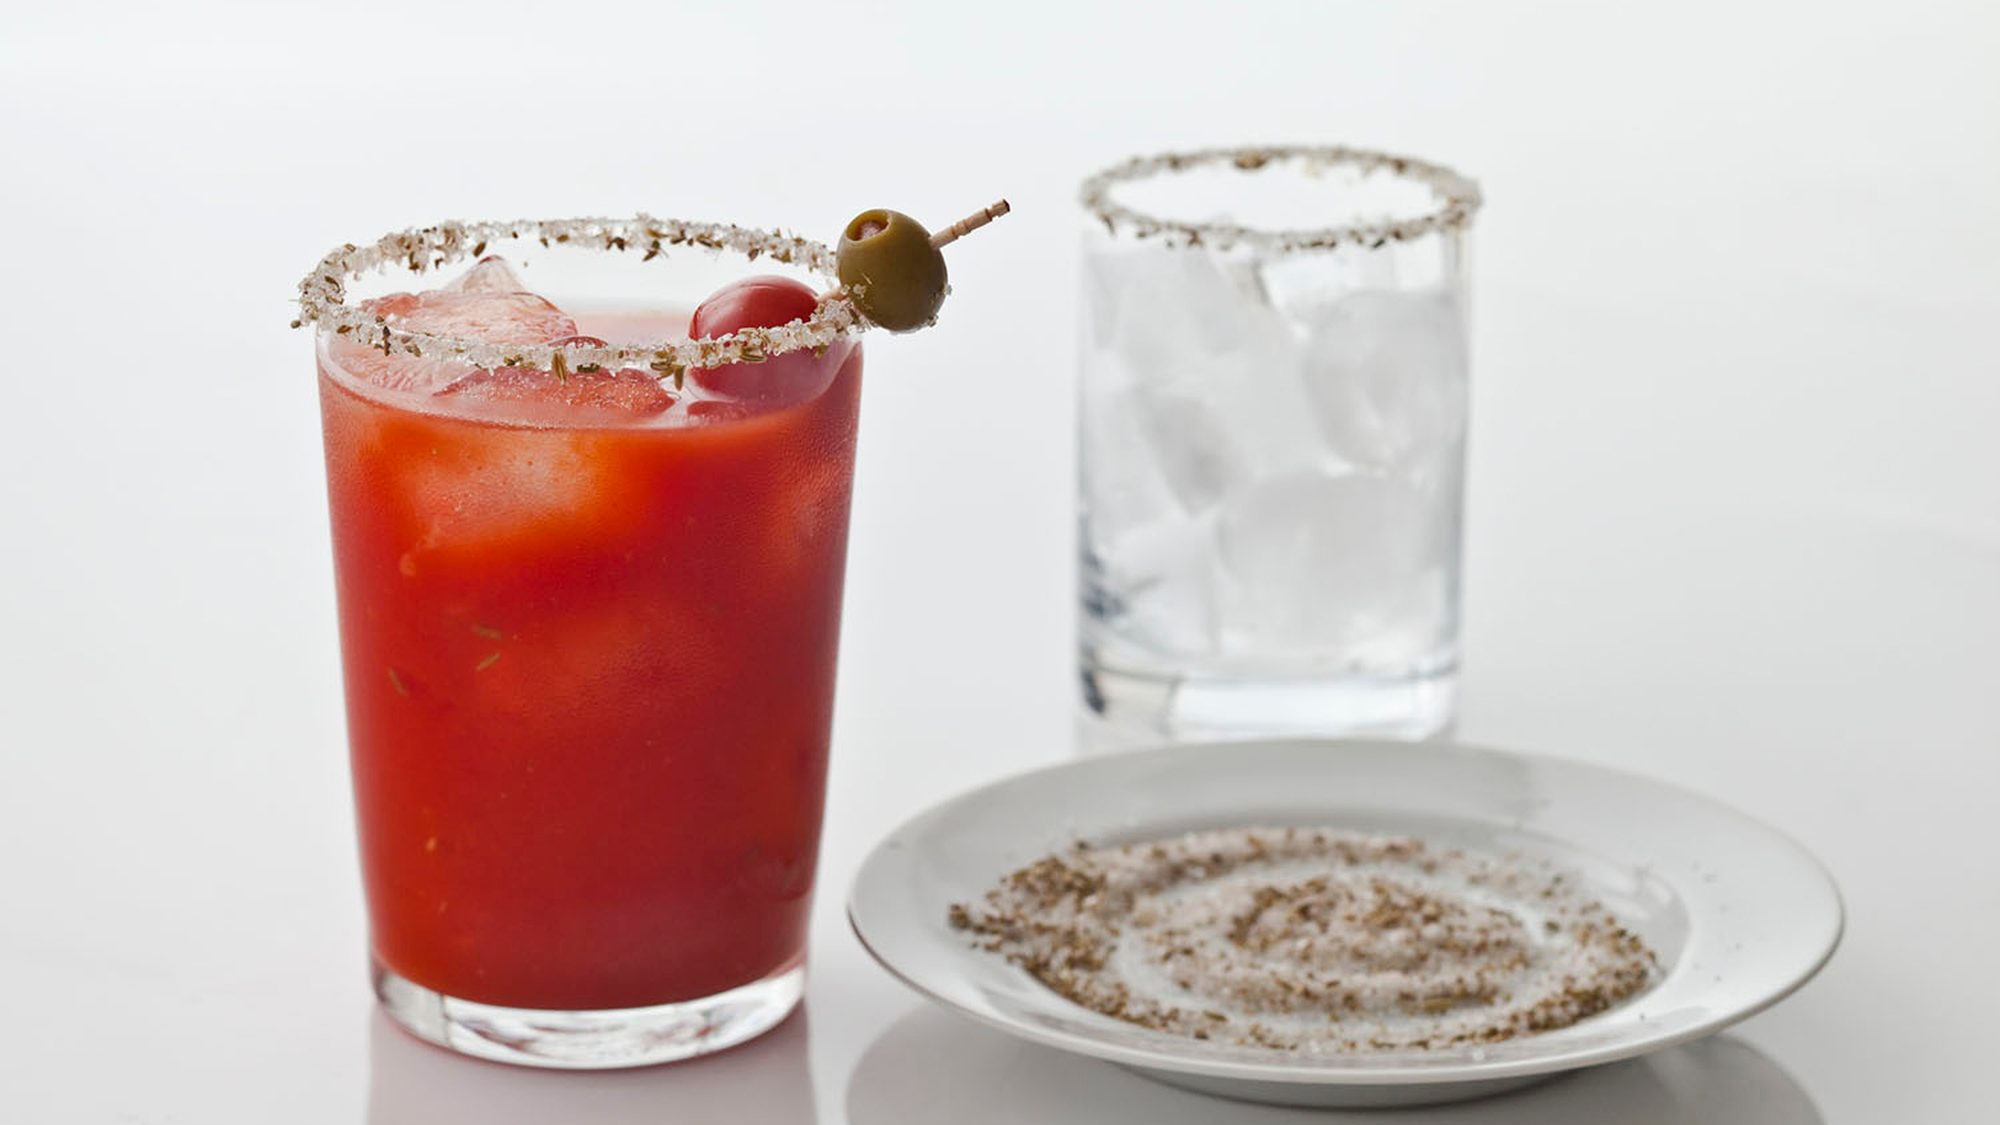 McCormick Gourmet Peri Peri Fennel Bloody mary with Vodka Infused Tomatoes